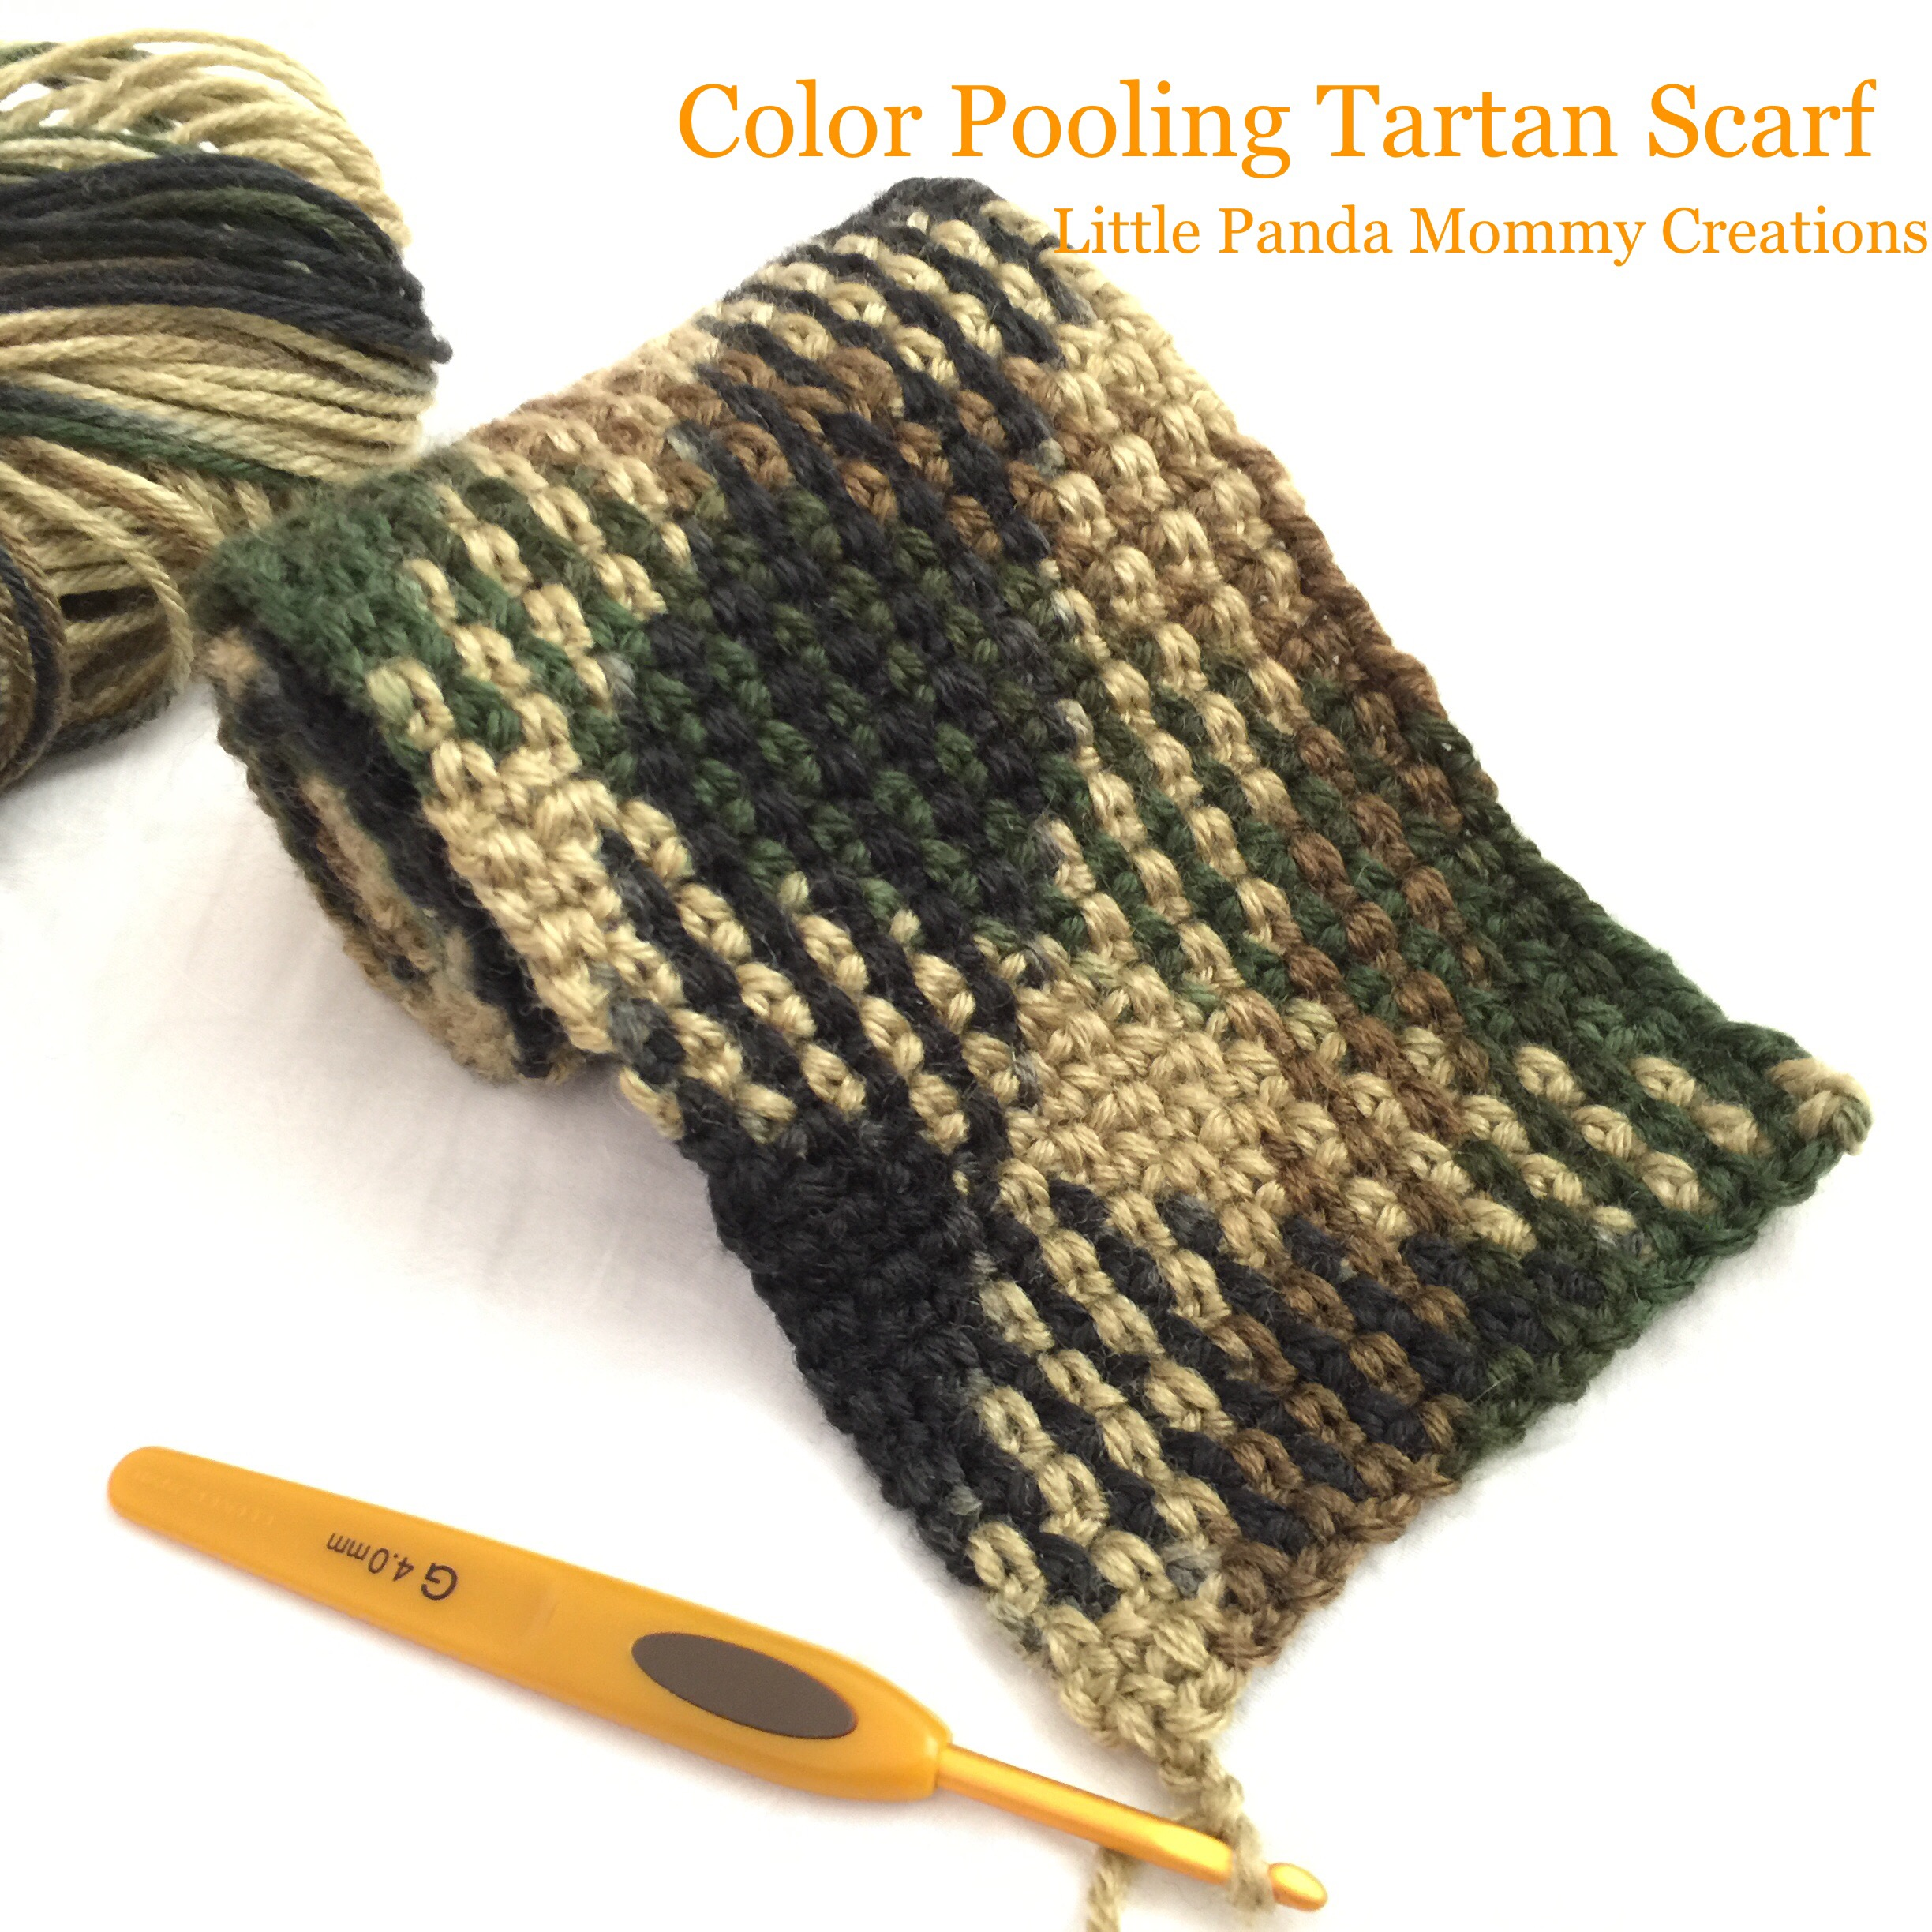 Crochet Tartan Scarf with Planned Color Pooling Little Panda Mommy